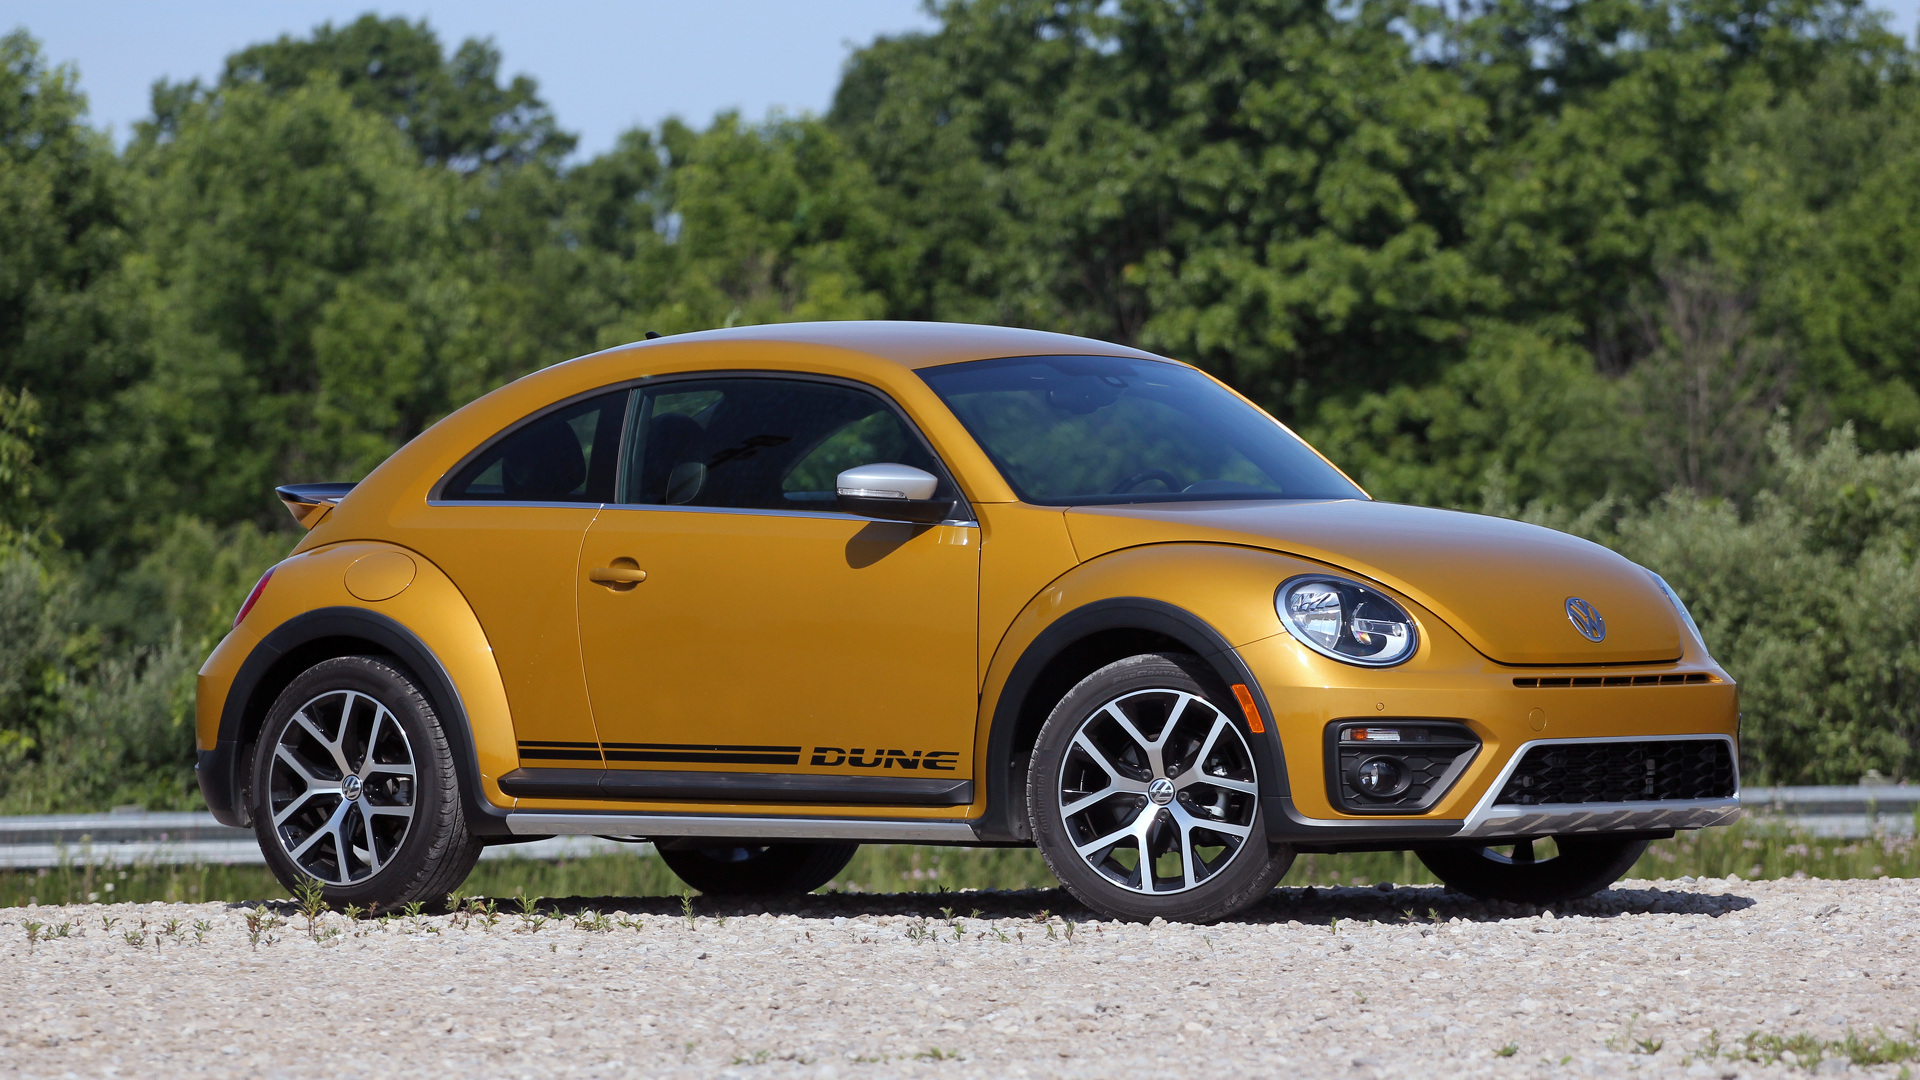 new volkswagen can suv roc conquer t maxresdefault watch vw the small review class